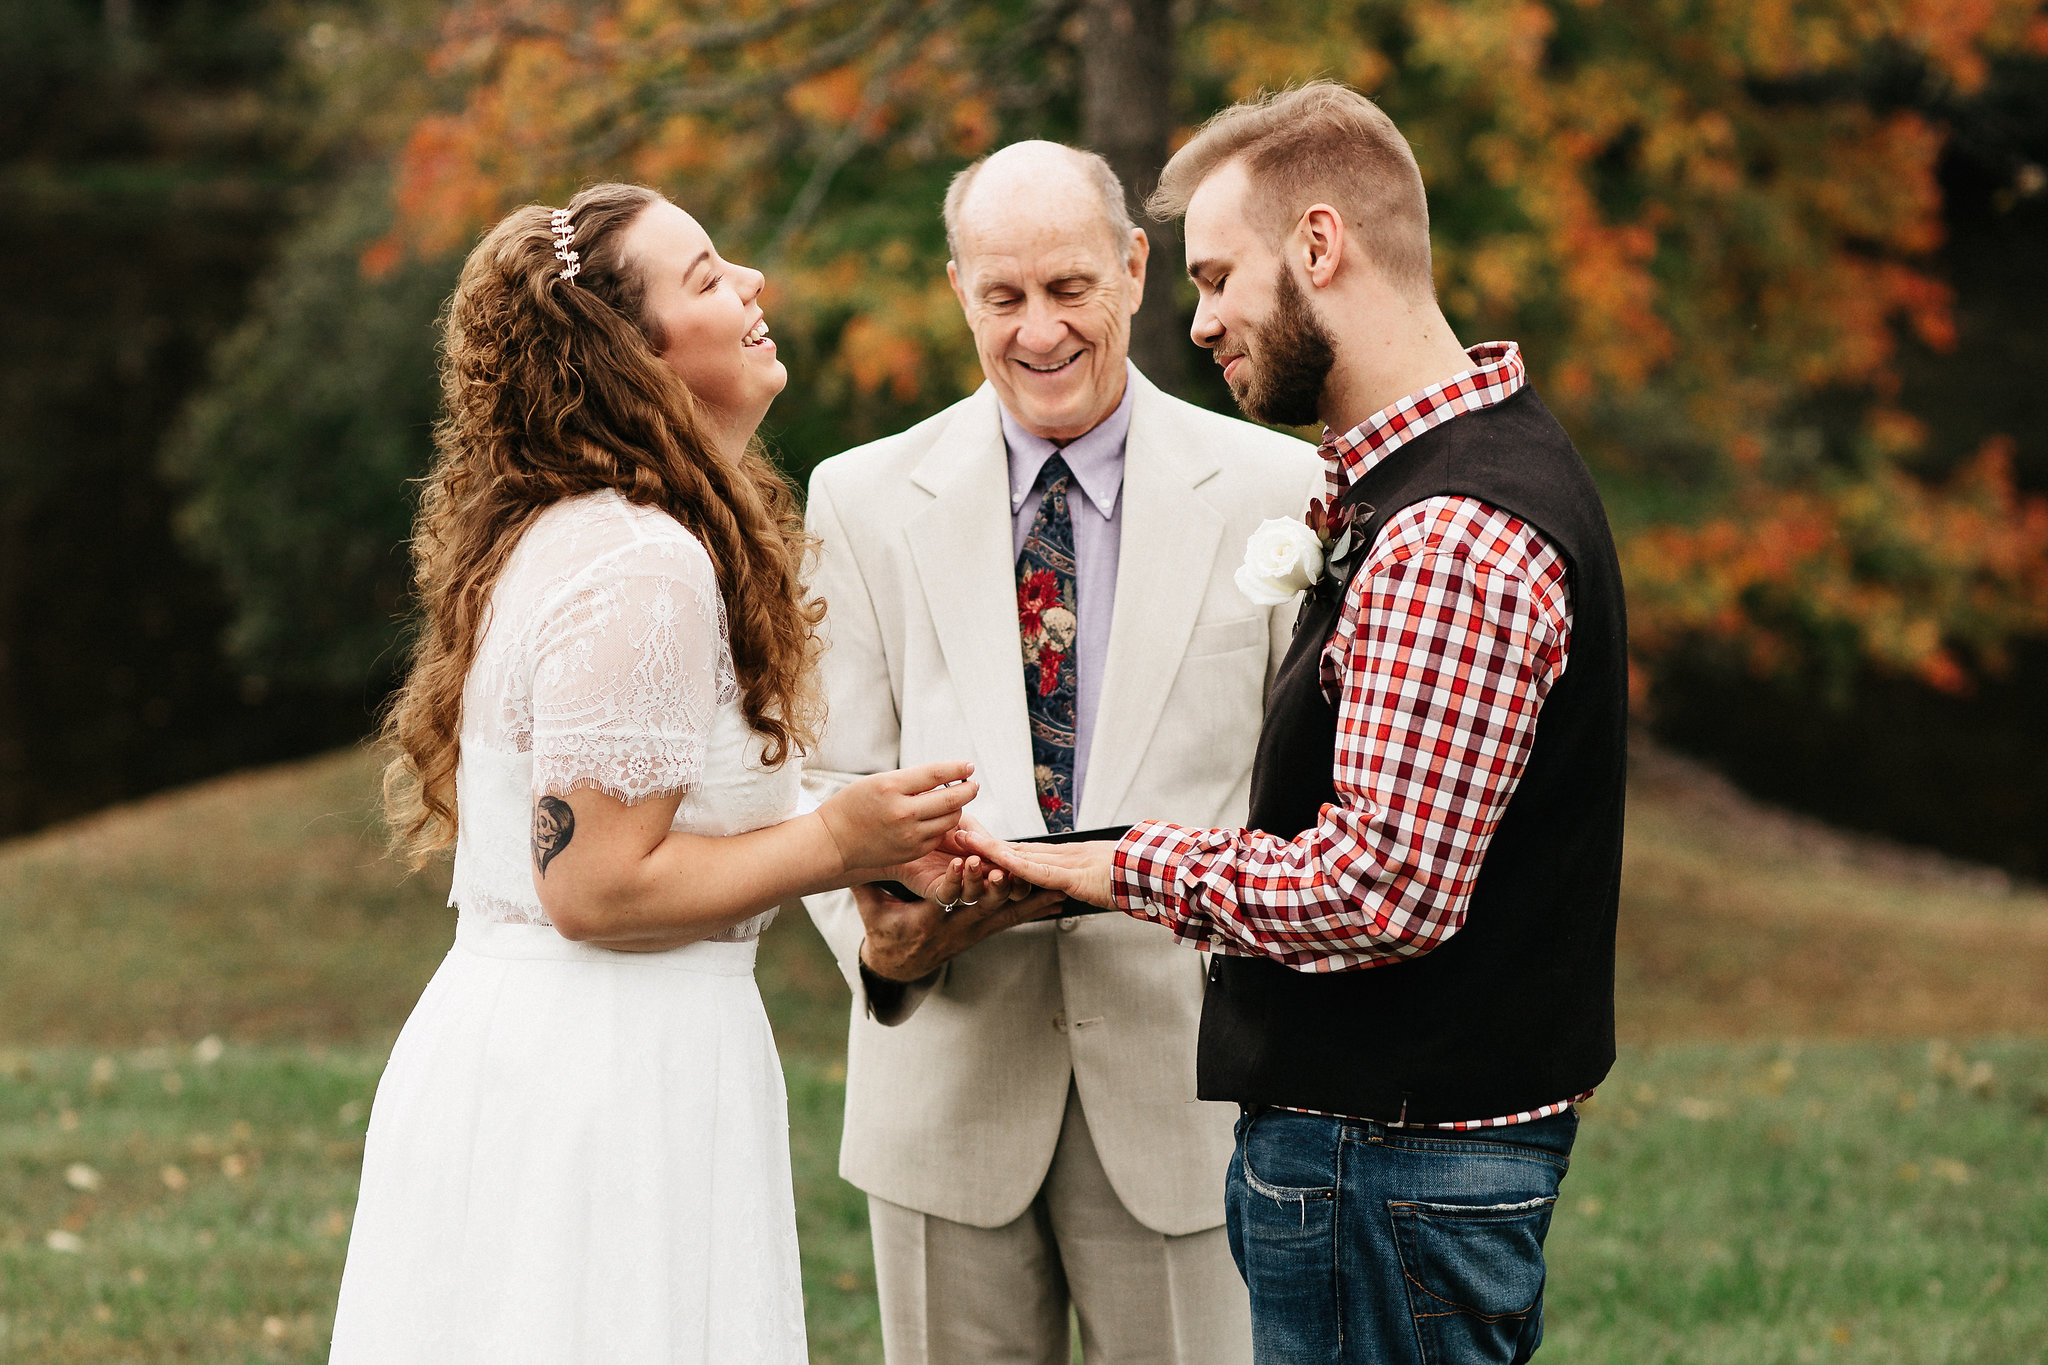 Caitlin&CodyMarried2017-11-03at19.19.37PM59.jpg